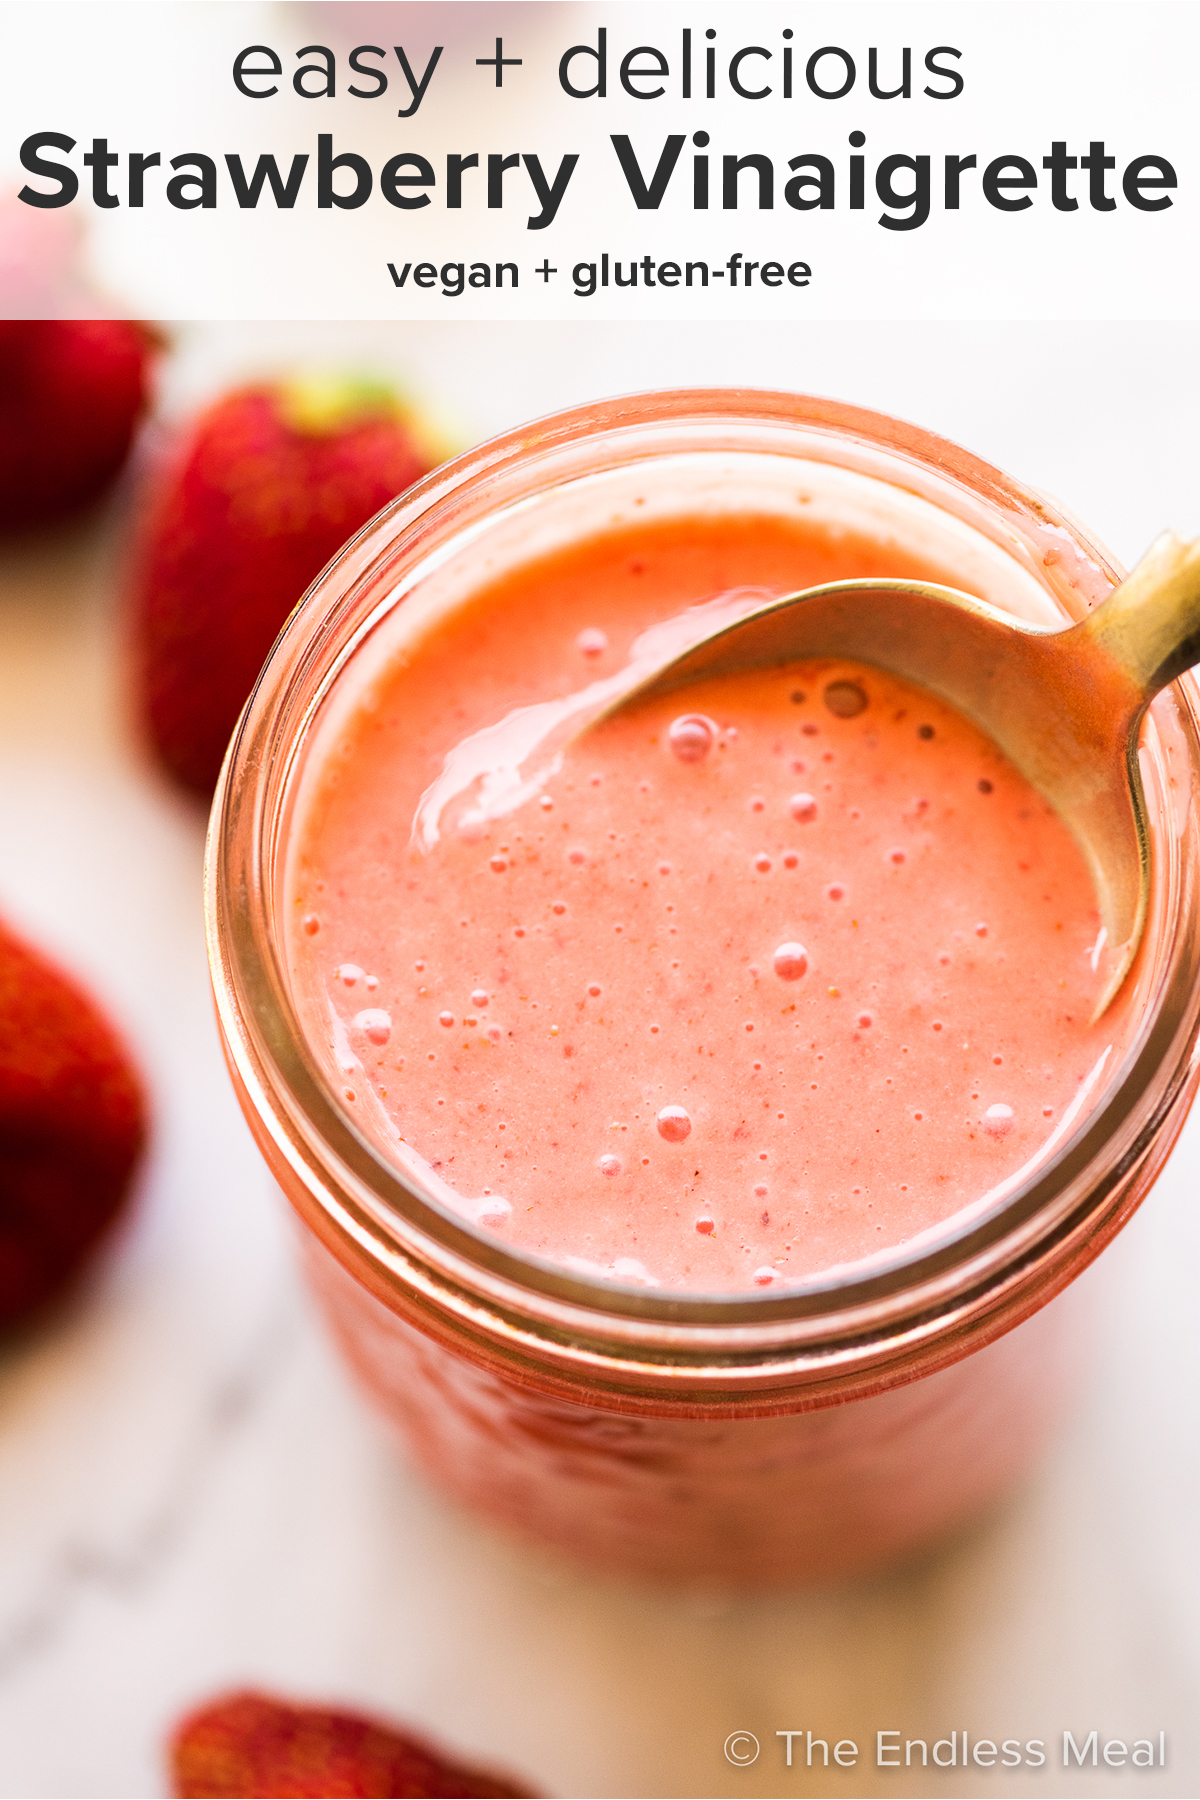 Strawberry vinaigrette in a glass jar with a spoon and the recipe title on top of the picture.